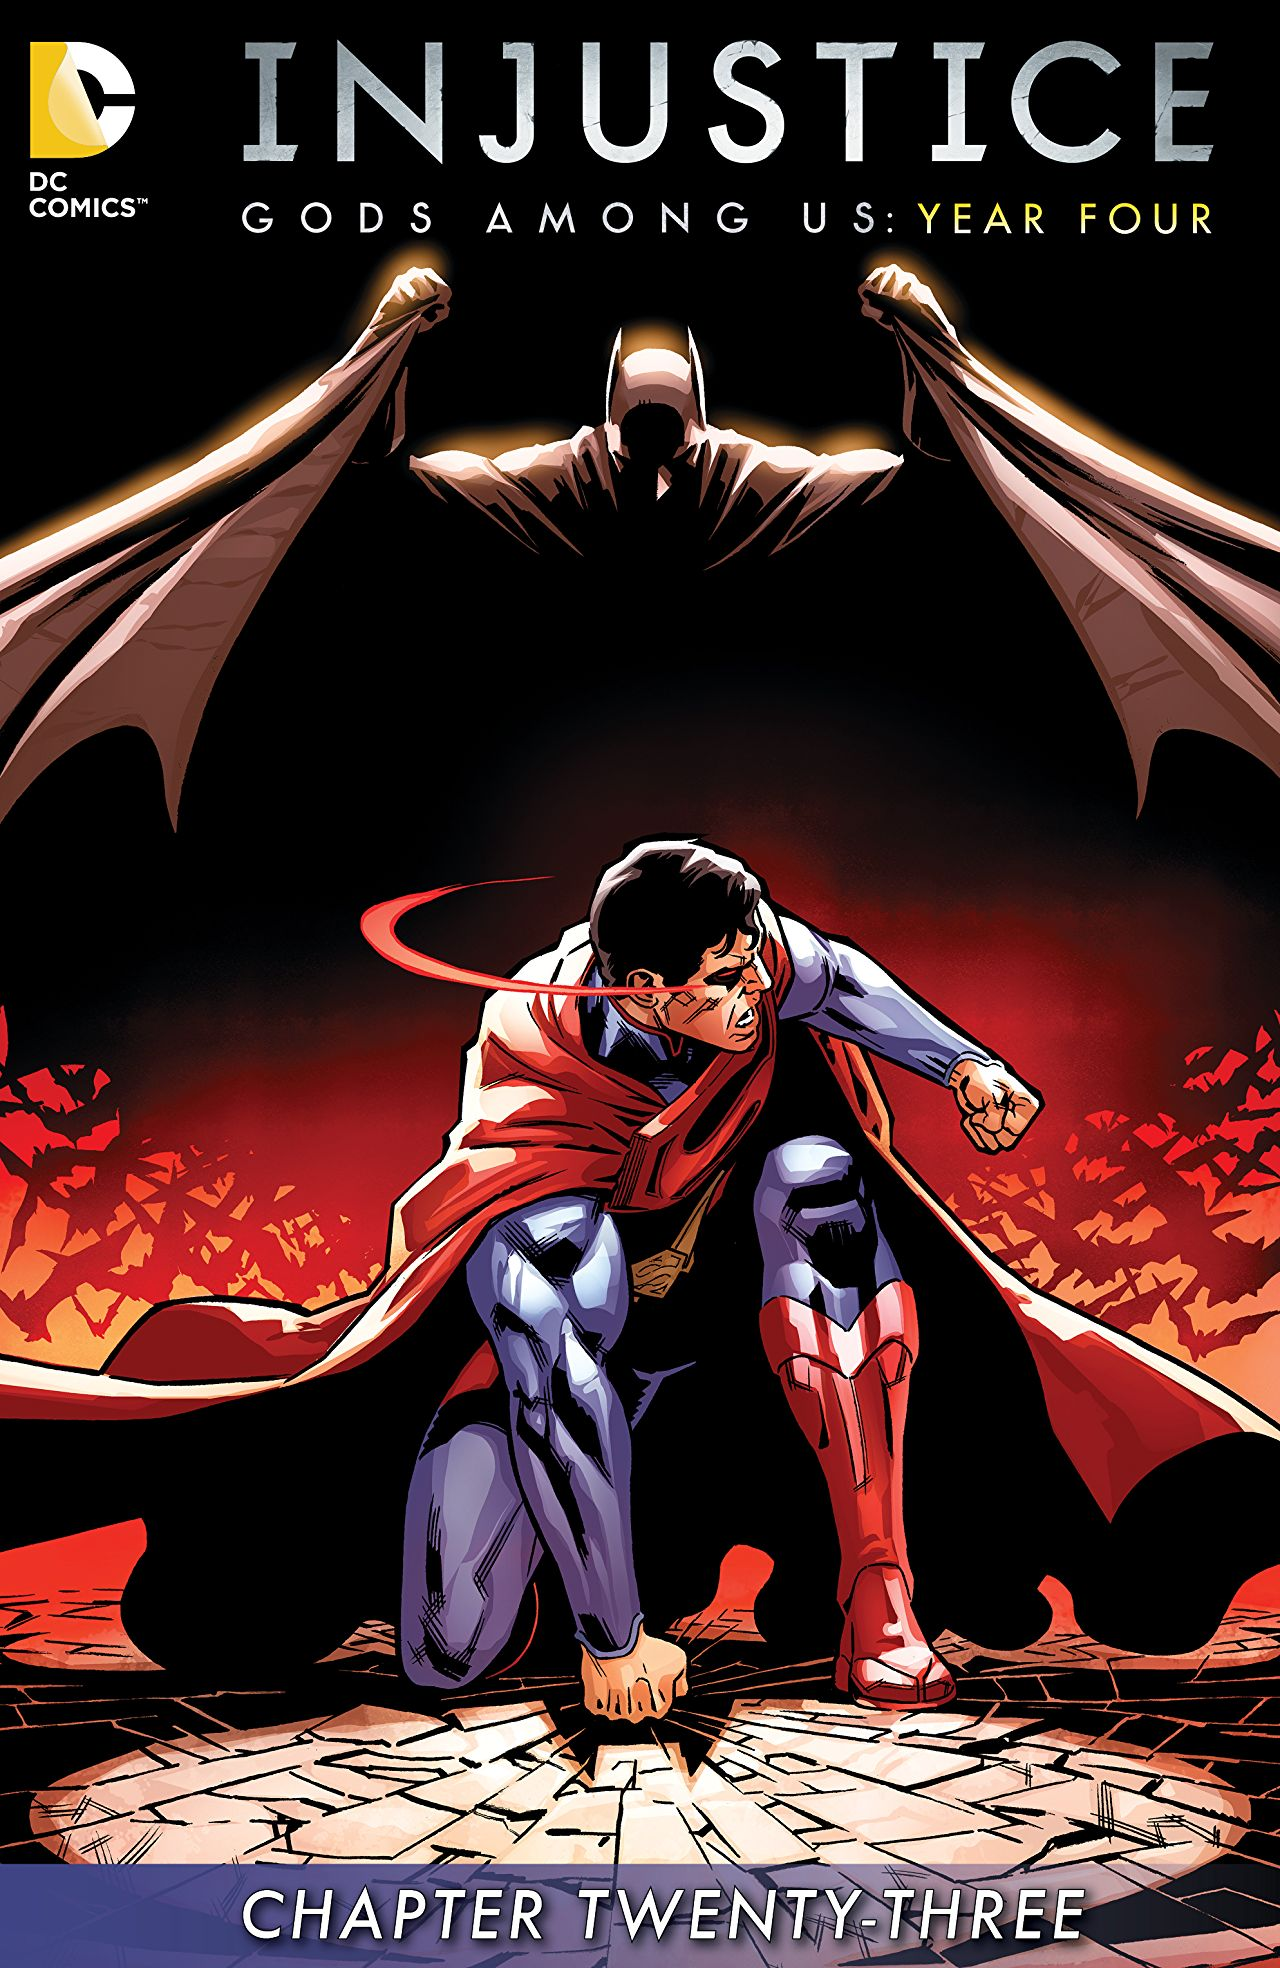 Injustice: Gods Among Us: Year Four Vol 1 23 (Digital)